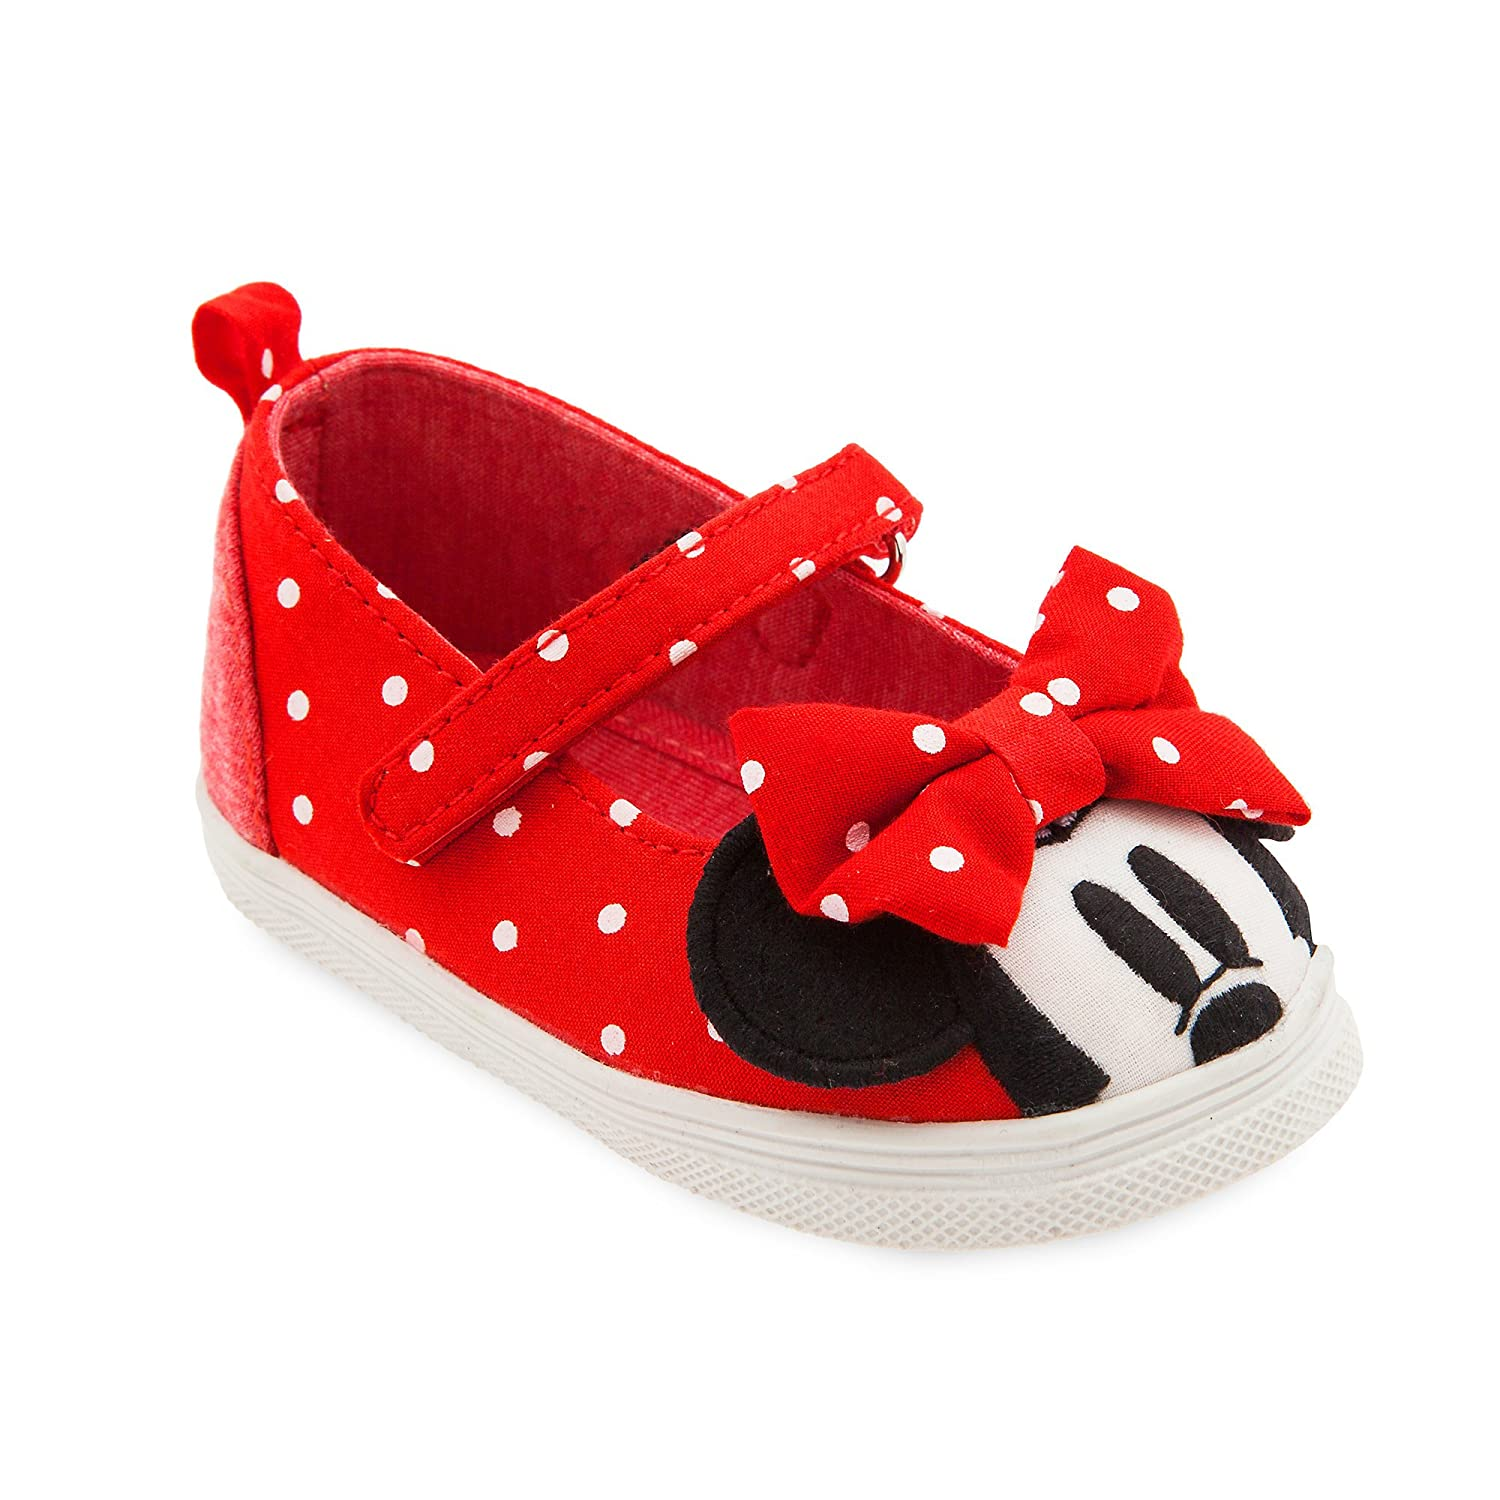 d6099d16a44 Disney Minnie Mouse Shoes for Baby Size 12-18 MO Multi